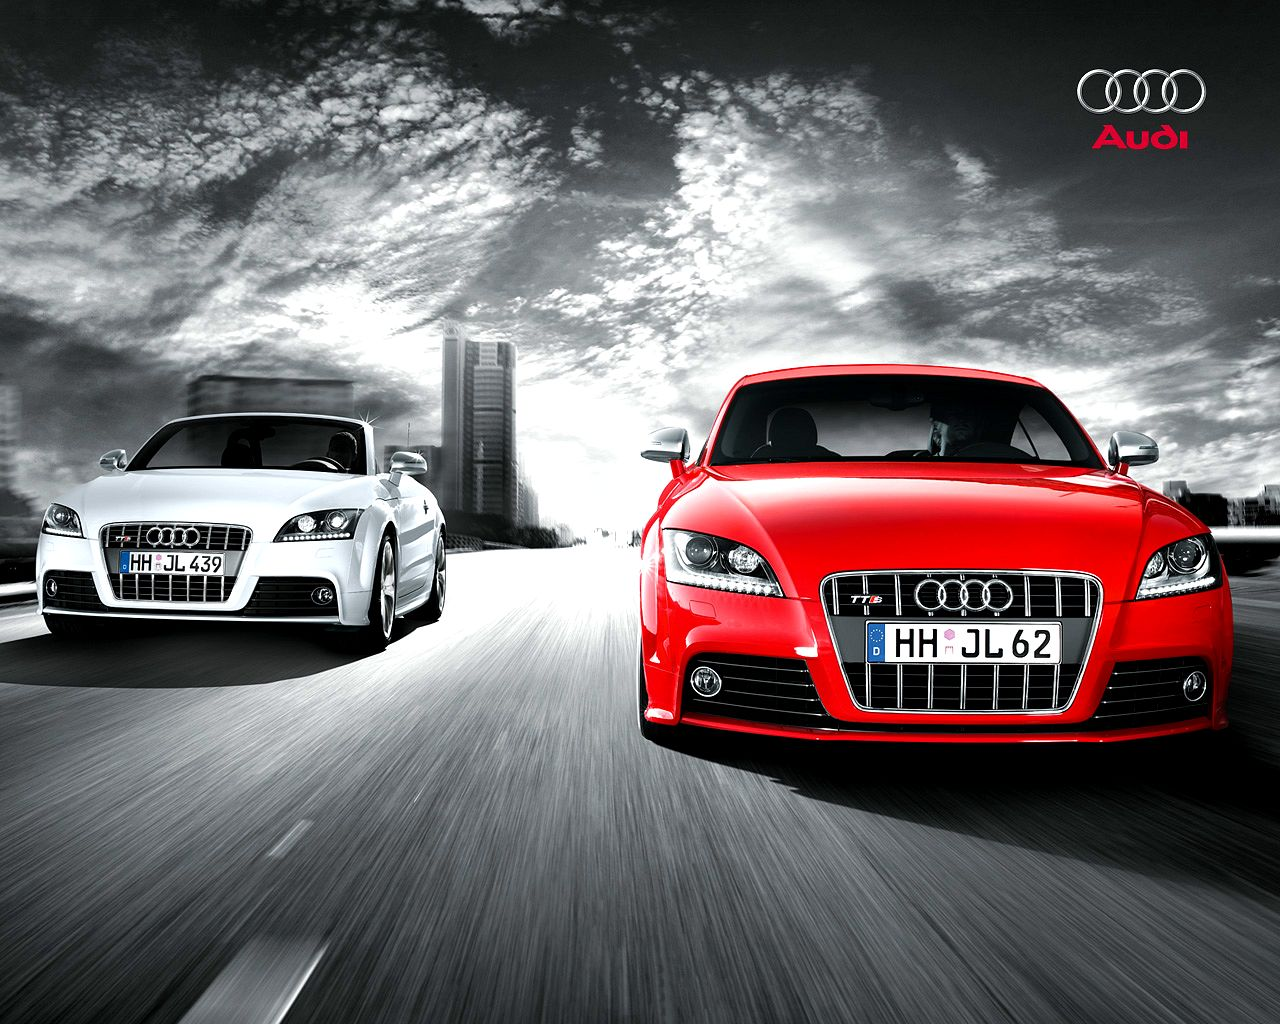 HD Audi Car Wallpapers Nature Wallpaper - Audi car background